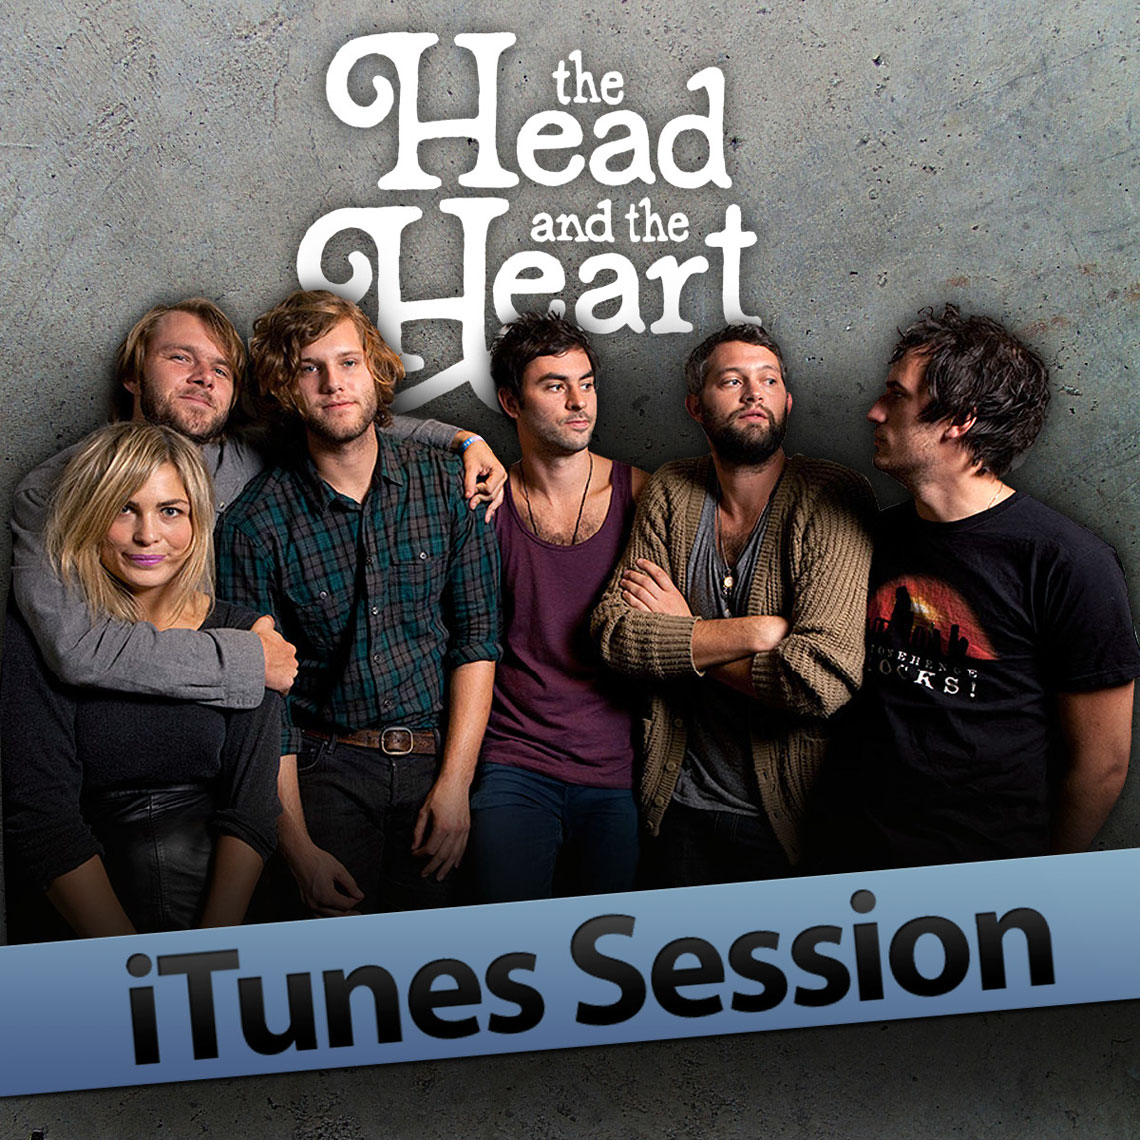 The-Head-and-the-Heart-iTunes-Session.jpg